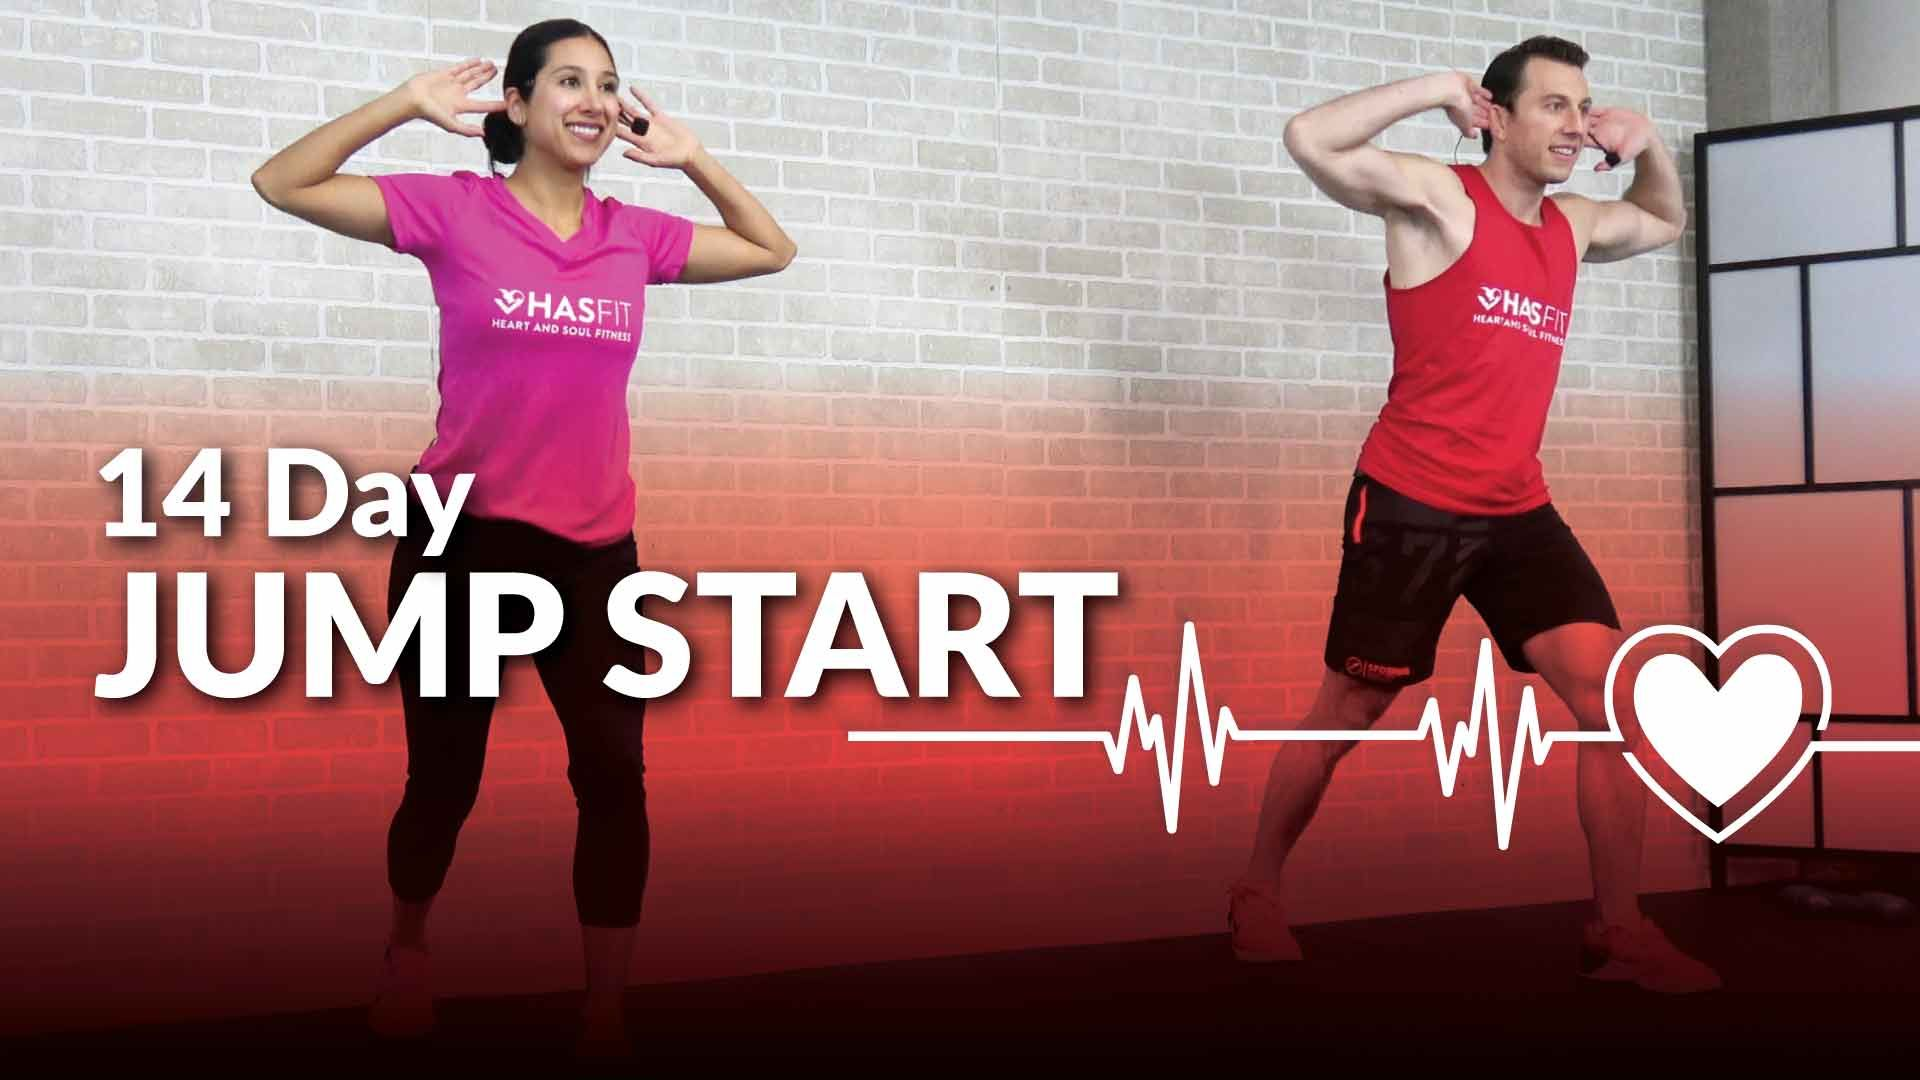 Which Program Is Right For Me Hasfit Free Full Length Workout Videos And Fitness Programs In 2021 Beginner Workout Program Workout Videos Beginner Workout